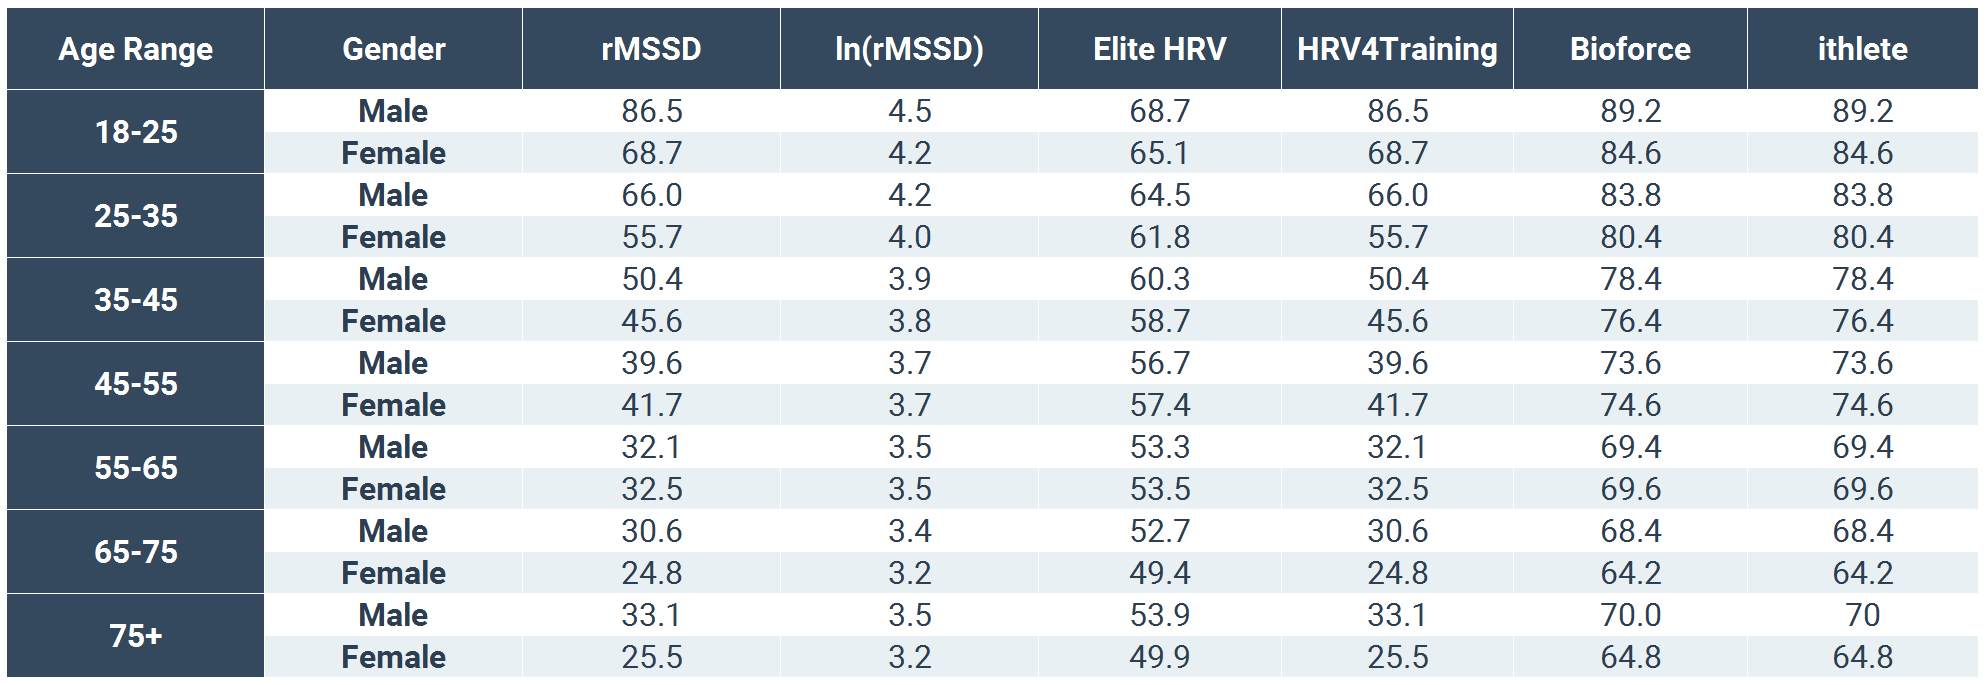 Normative elite hrv scores by age and gender elite hrv hrvplatformscomparison nvjuhfo Images